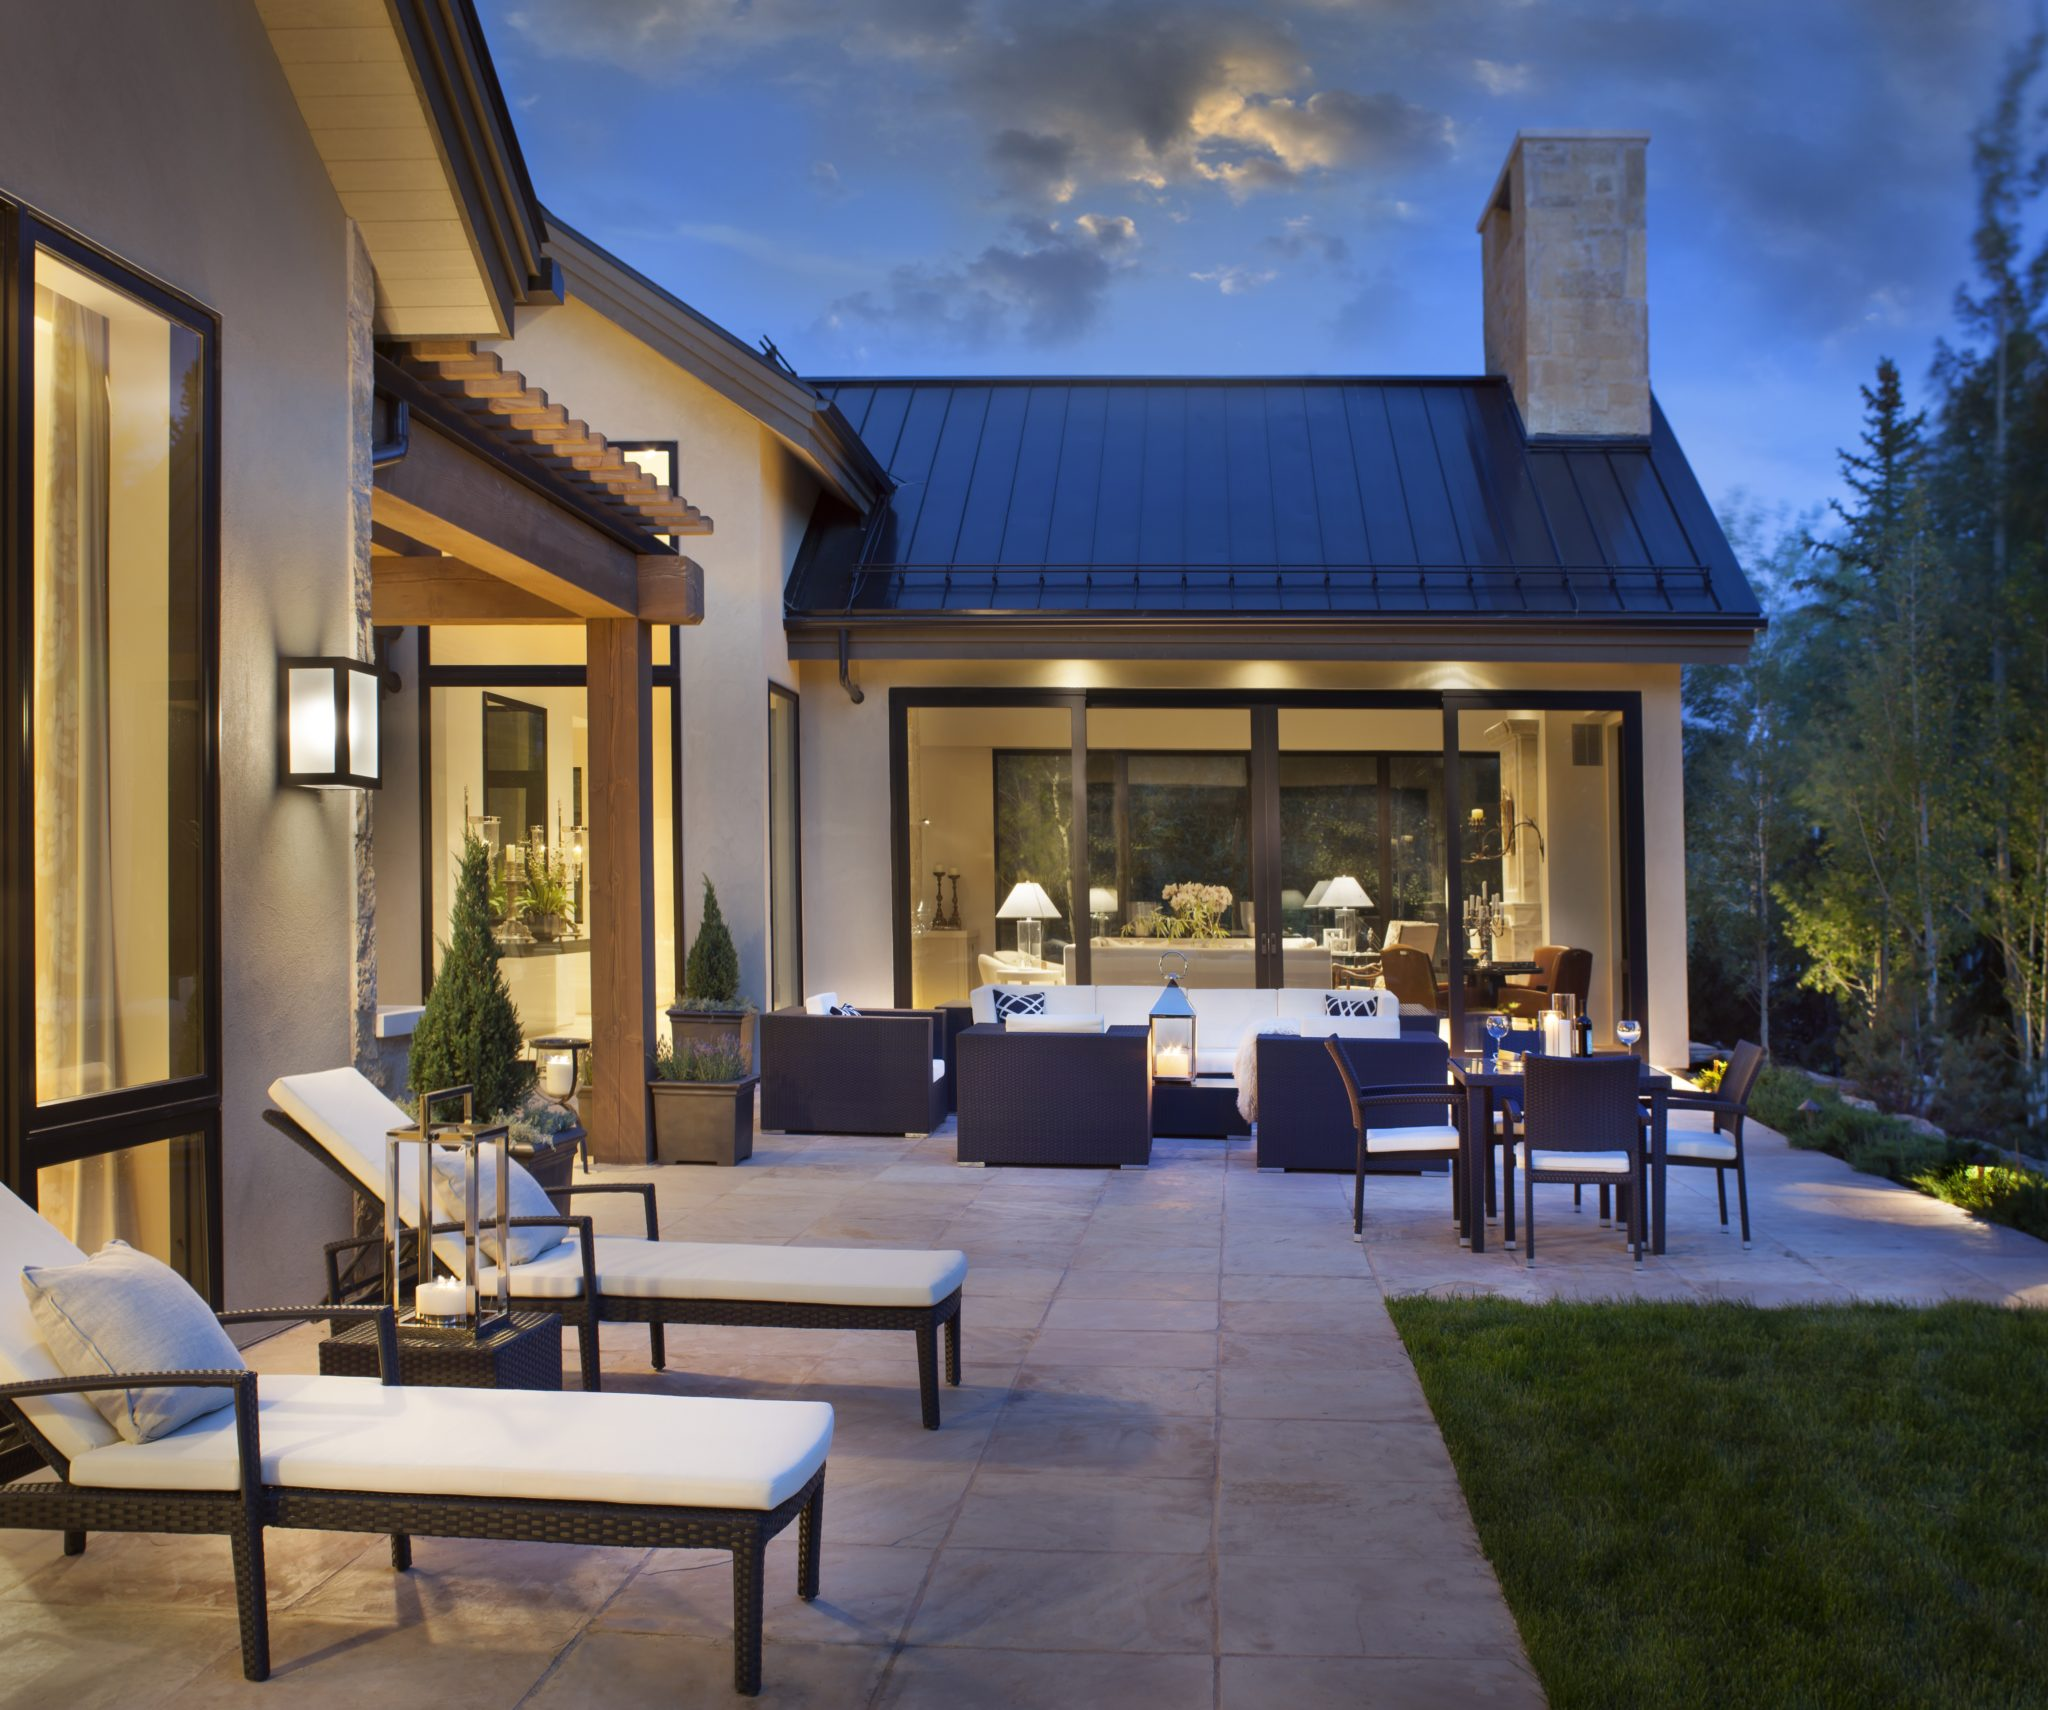 Patio takes advantage of summer in the mountains by Brewster McLeod Architects